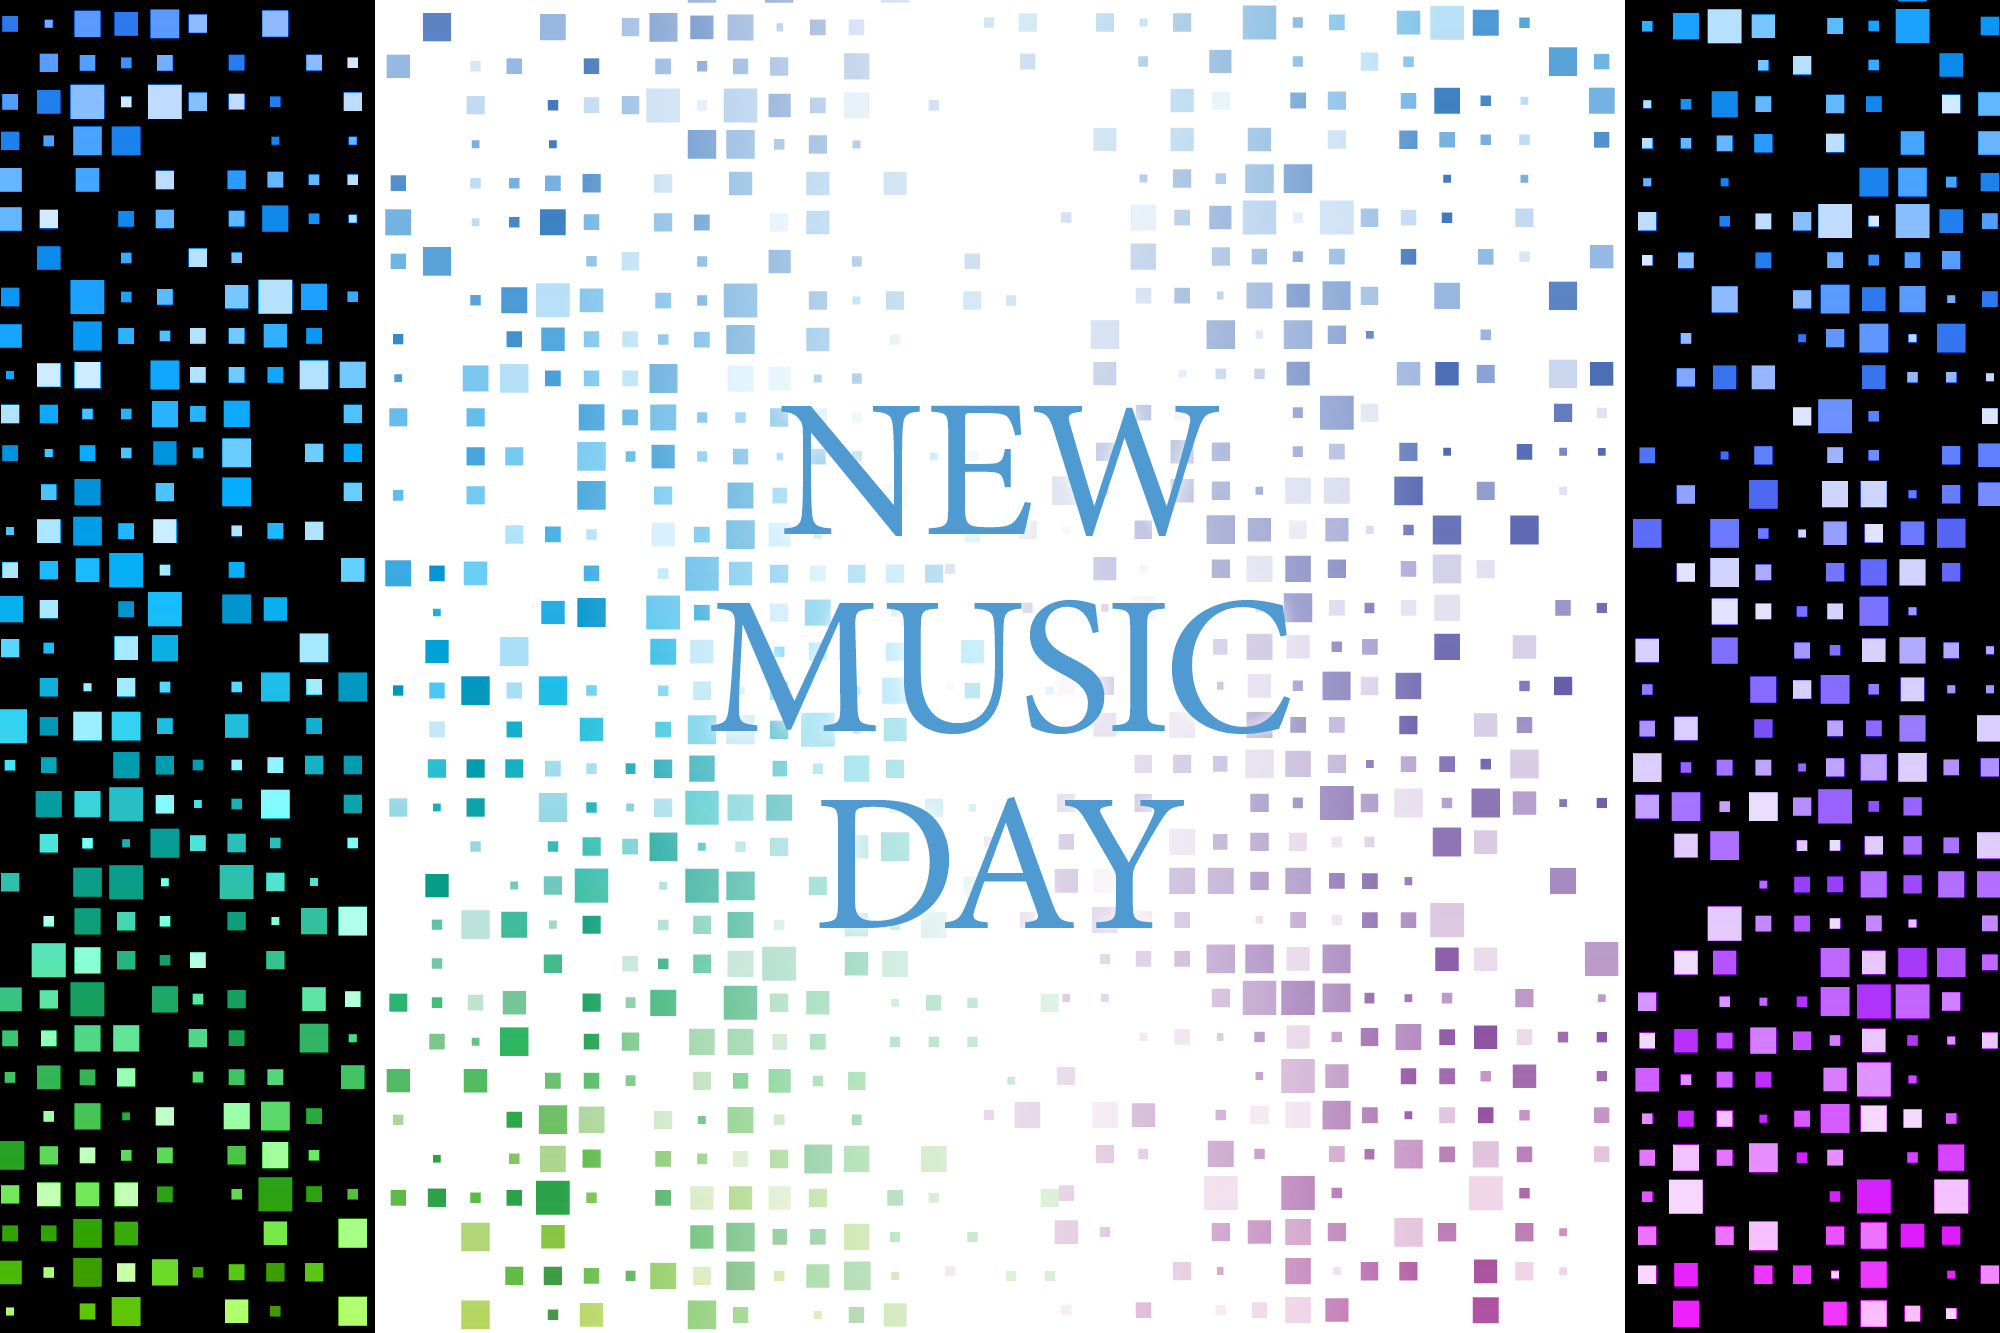 Image of colored squares with the words New Music Day